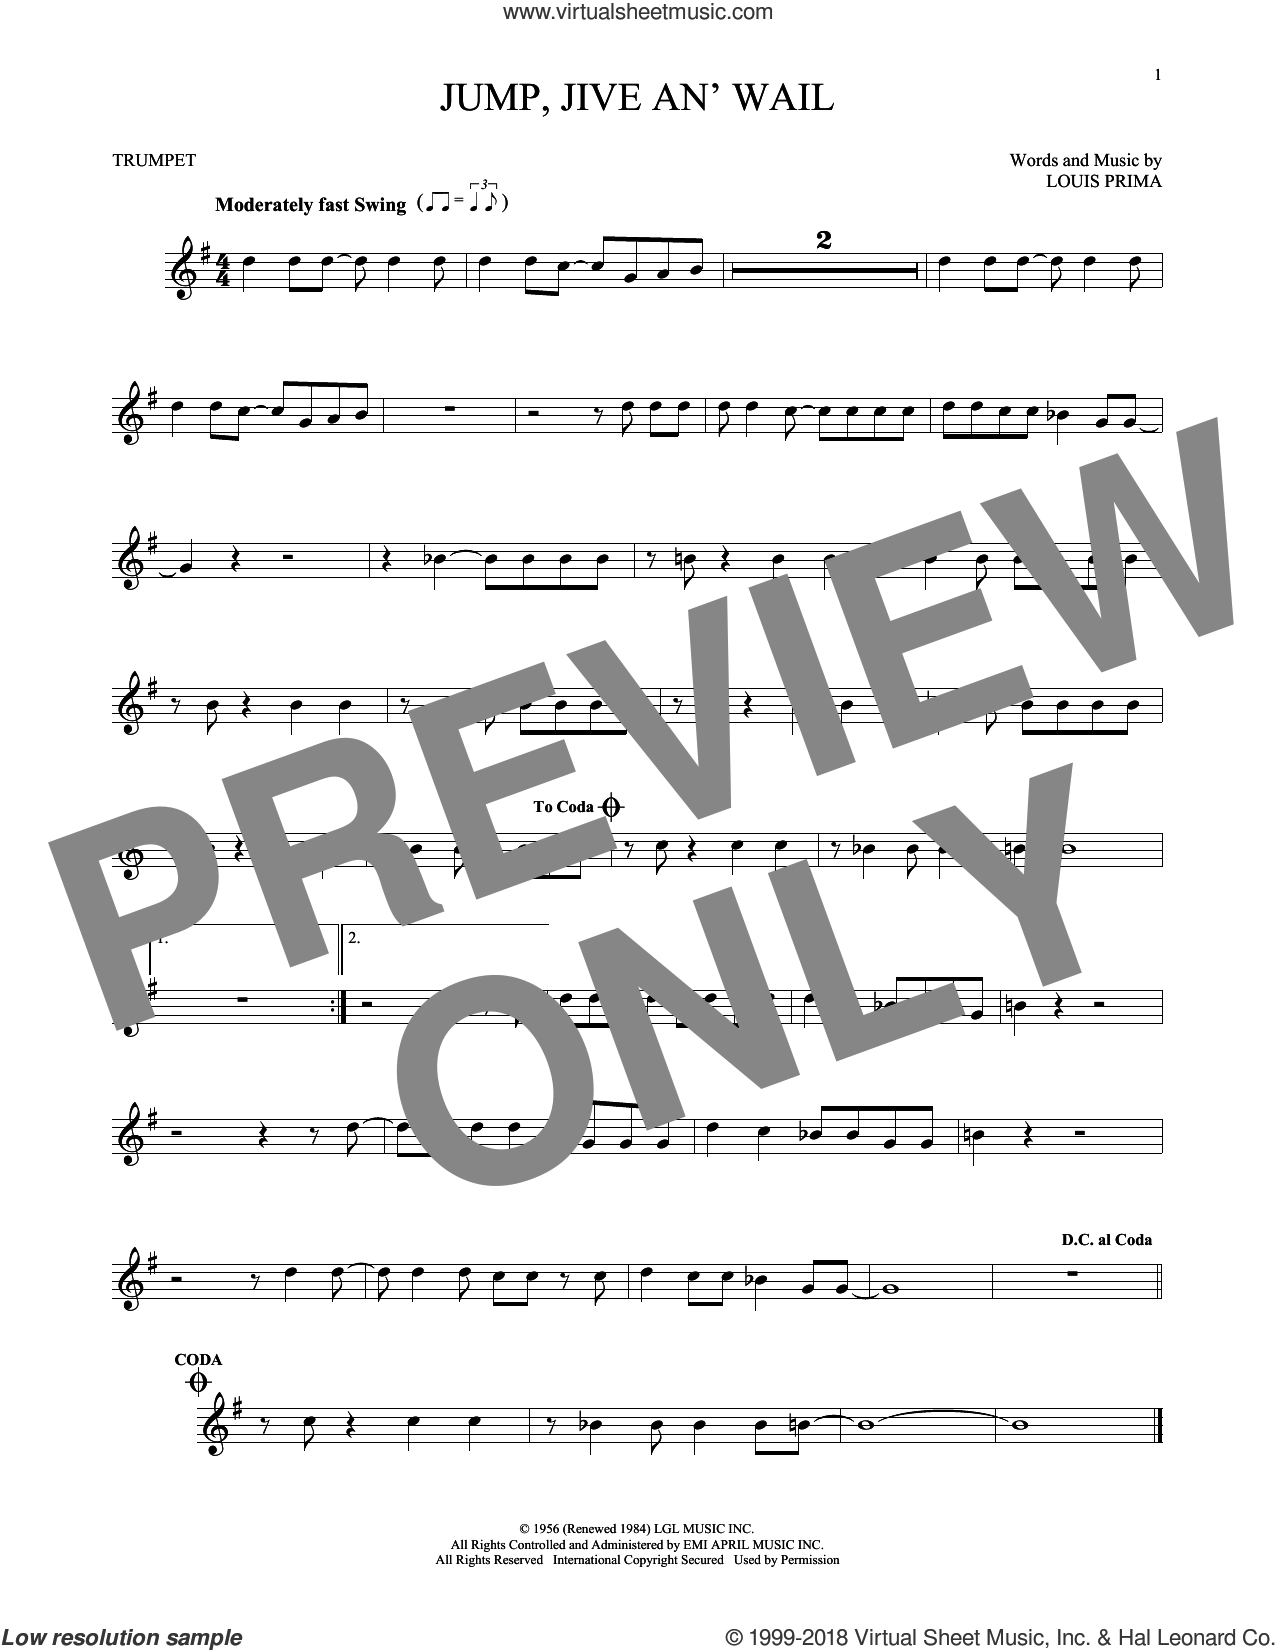 Jump, Jive An' Wail sheet music for trumpet solo by Louis Prima and Brian Setzer, intermediate